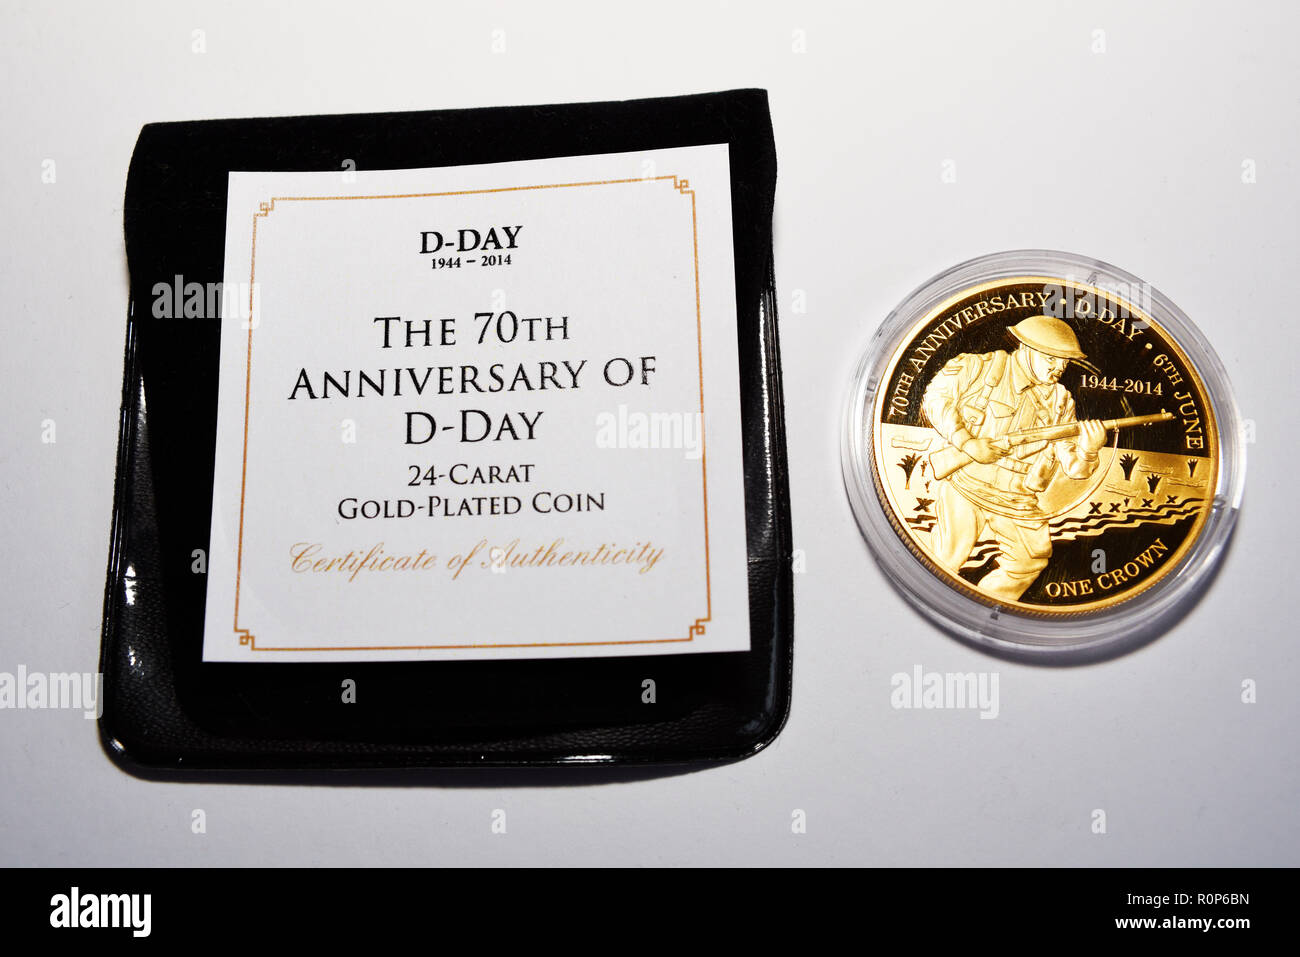 Specially minted coin. 70th anniversary D-Day 24 carat gold plated one crown coin. Commemoration coin. Second World War remembered. White background - Stock Image